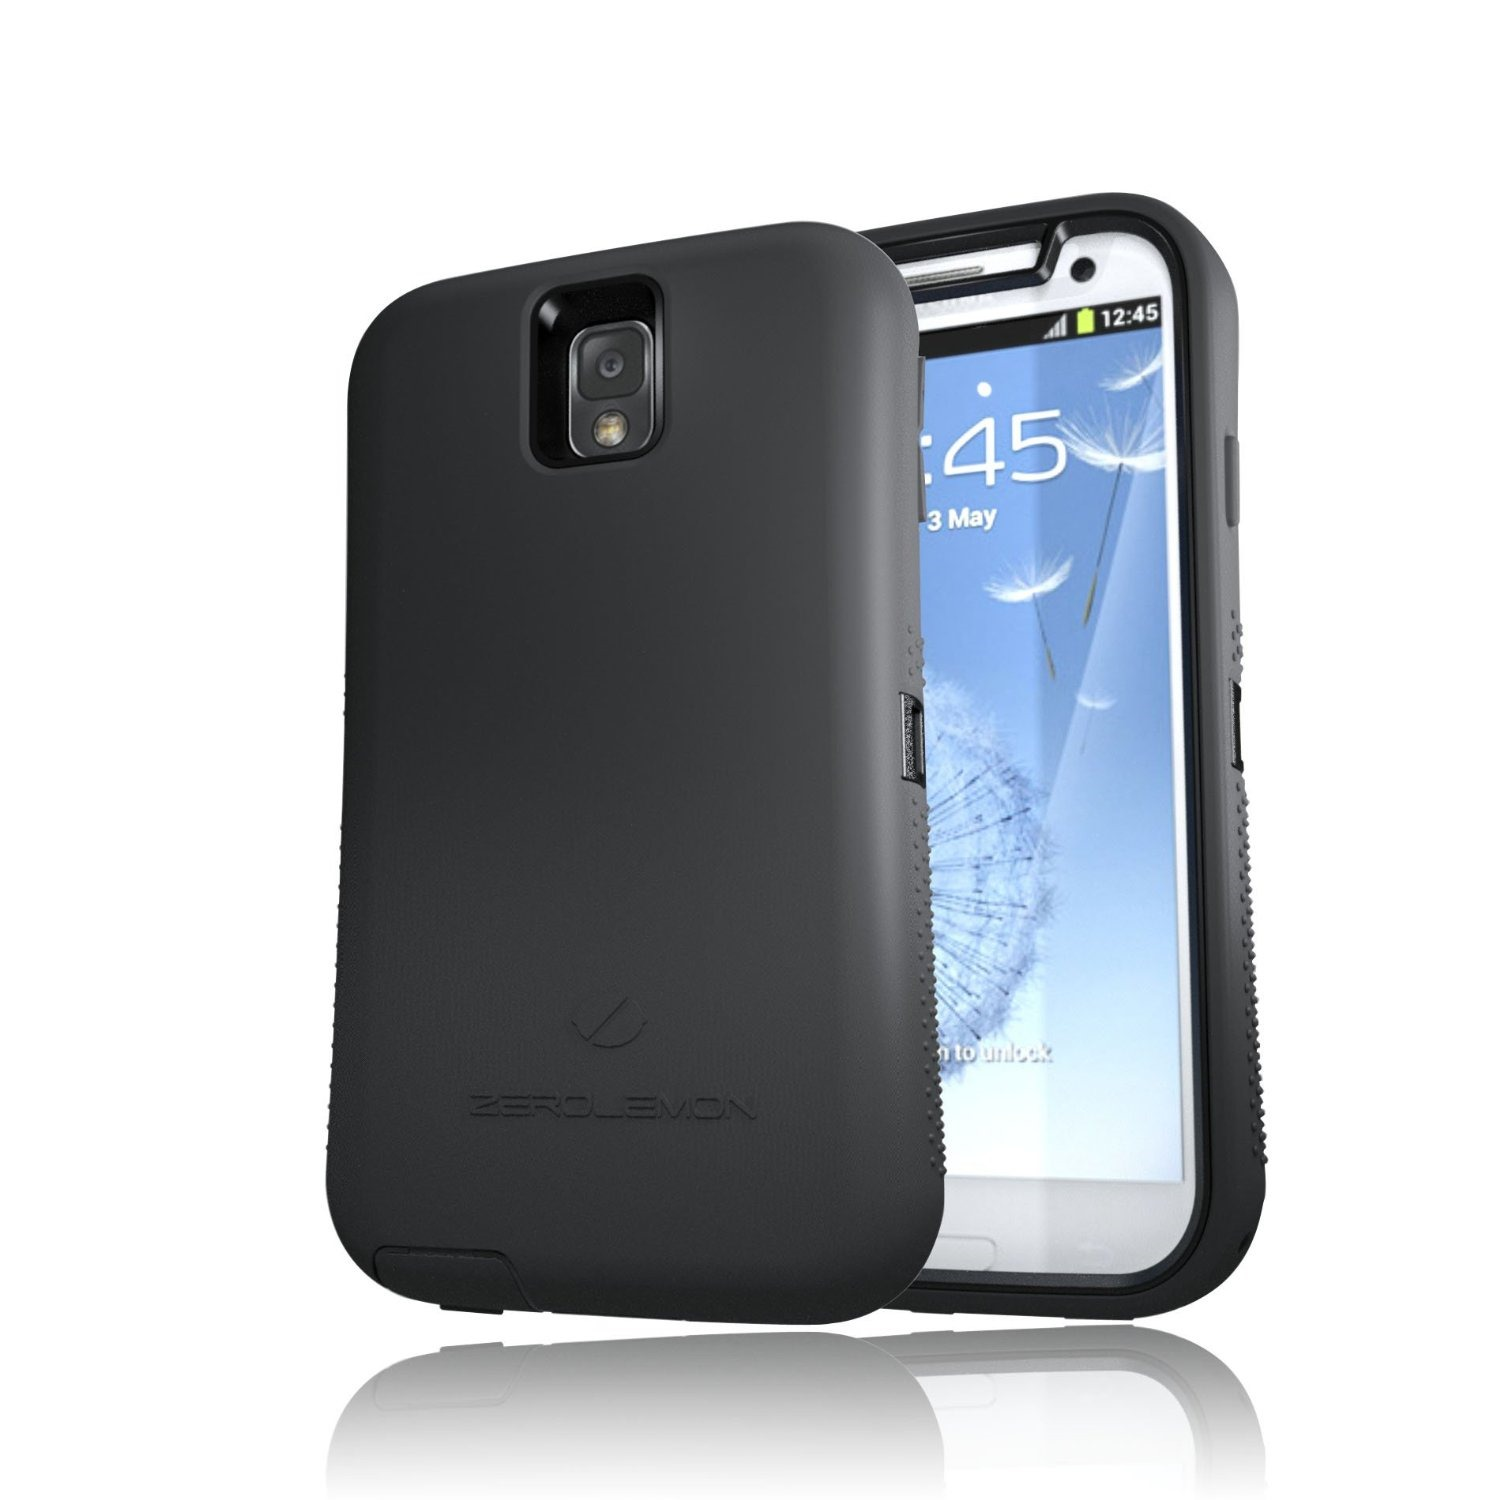 zerolemon 39 s rugged galaxy note 3 case with 10 000mah battery and nfc is finally available for. Black Bedroom Furniture Sets. Home Design Ideas